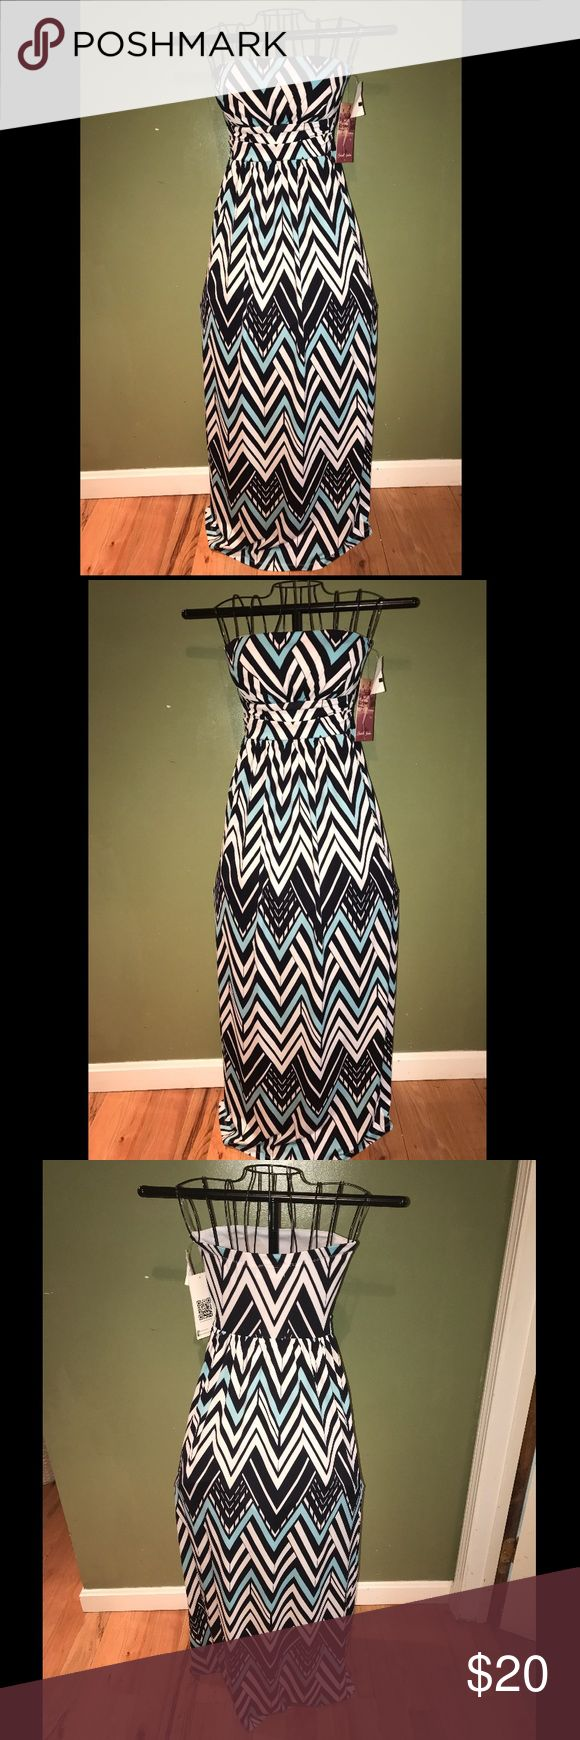 NWT -Never Worn Emerald Sundae Dress..🎉🎉🎉 Never worn (too small). Strapless and has Padded Top. Black, White, Blue Chevron dress...Bundle and save!! Emerald Sundae Dresses High Low